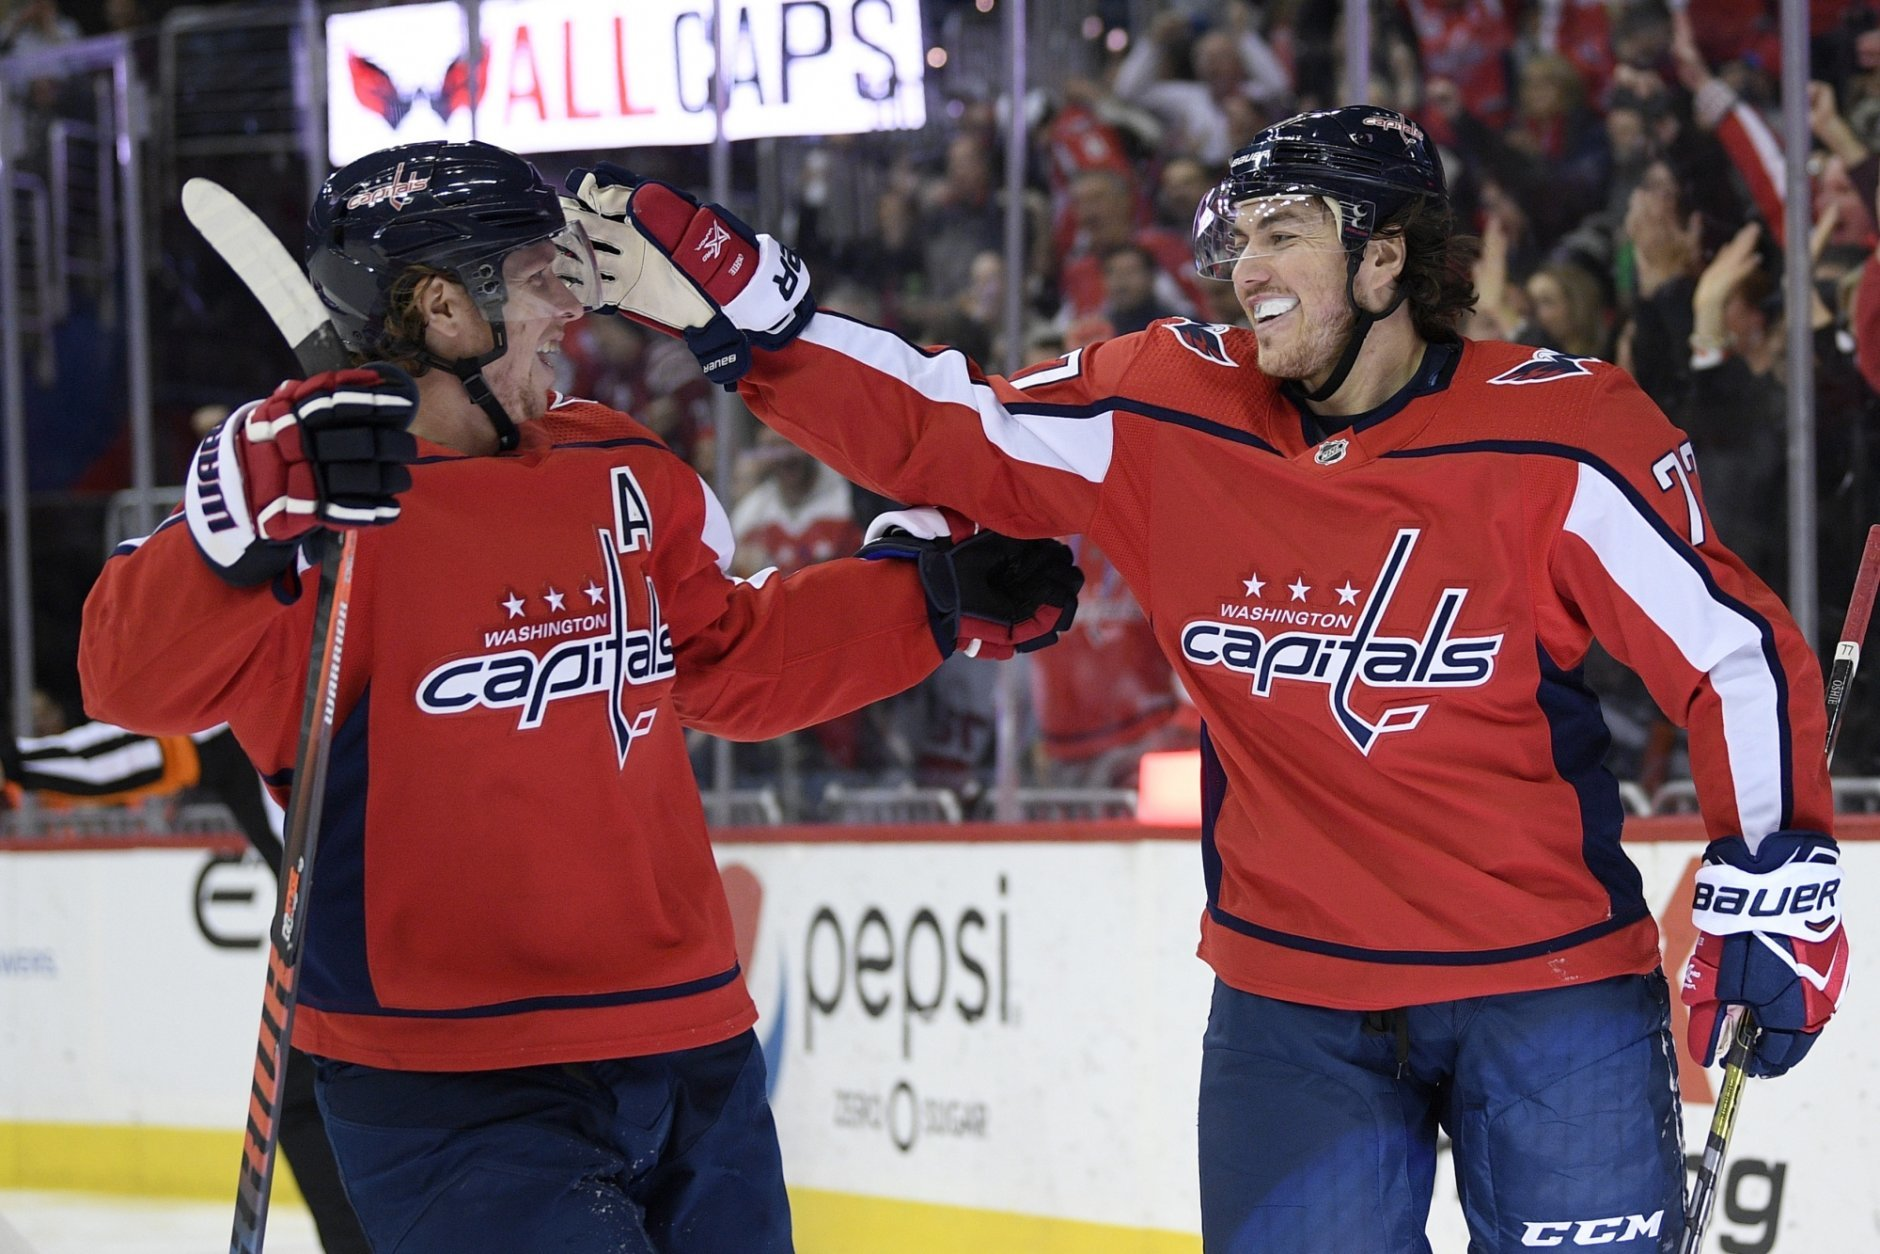 newest 654bd cd304 Capitals put on a show to overpower Senators 7-2   WTOP